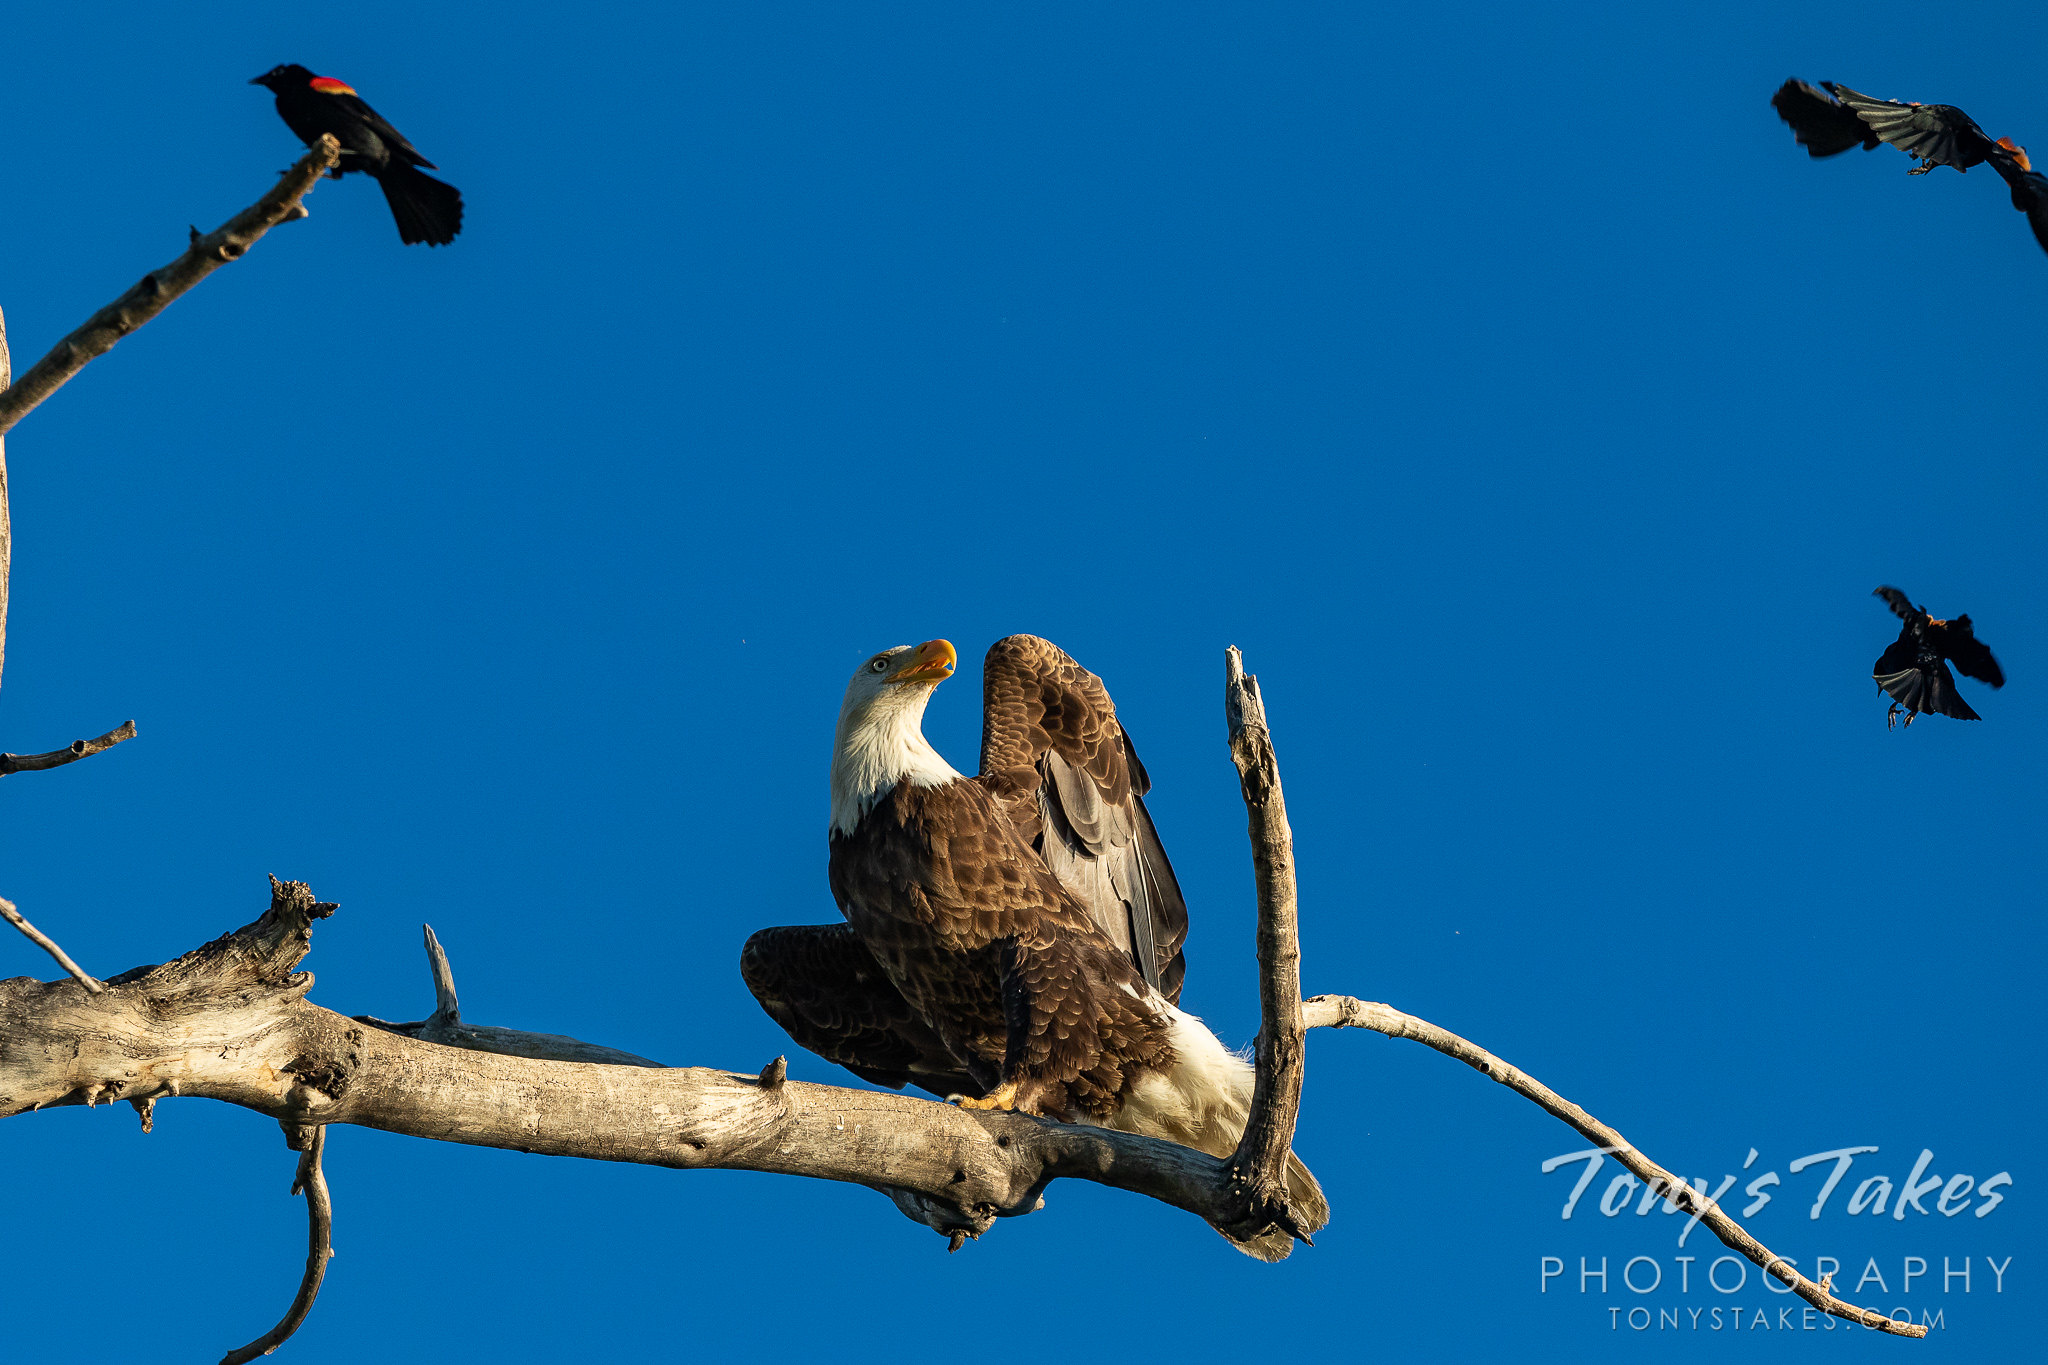 A bald eagle gets hassled by red-winged blackbirds. (© Tony's Takes)